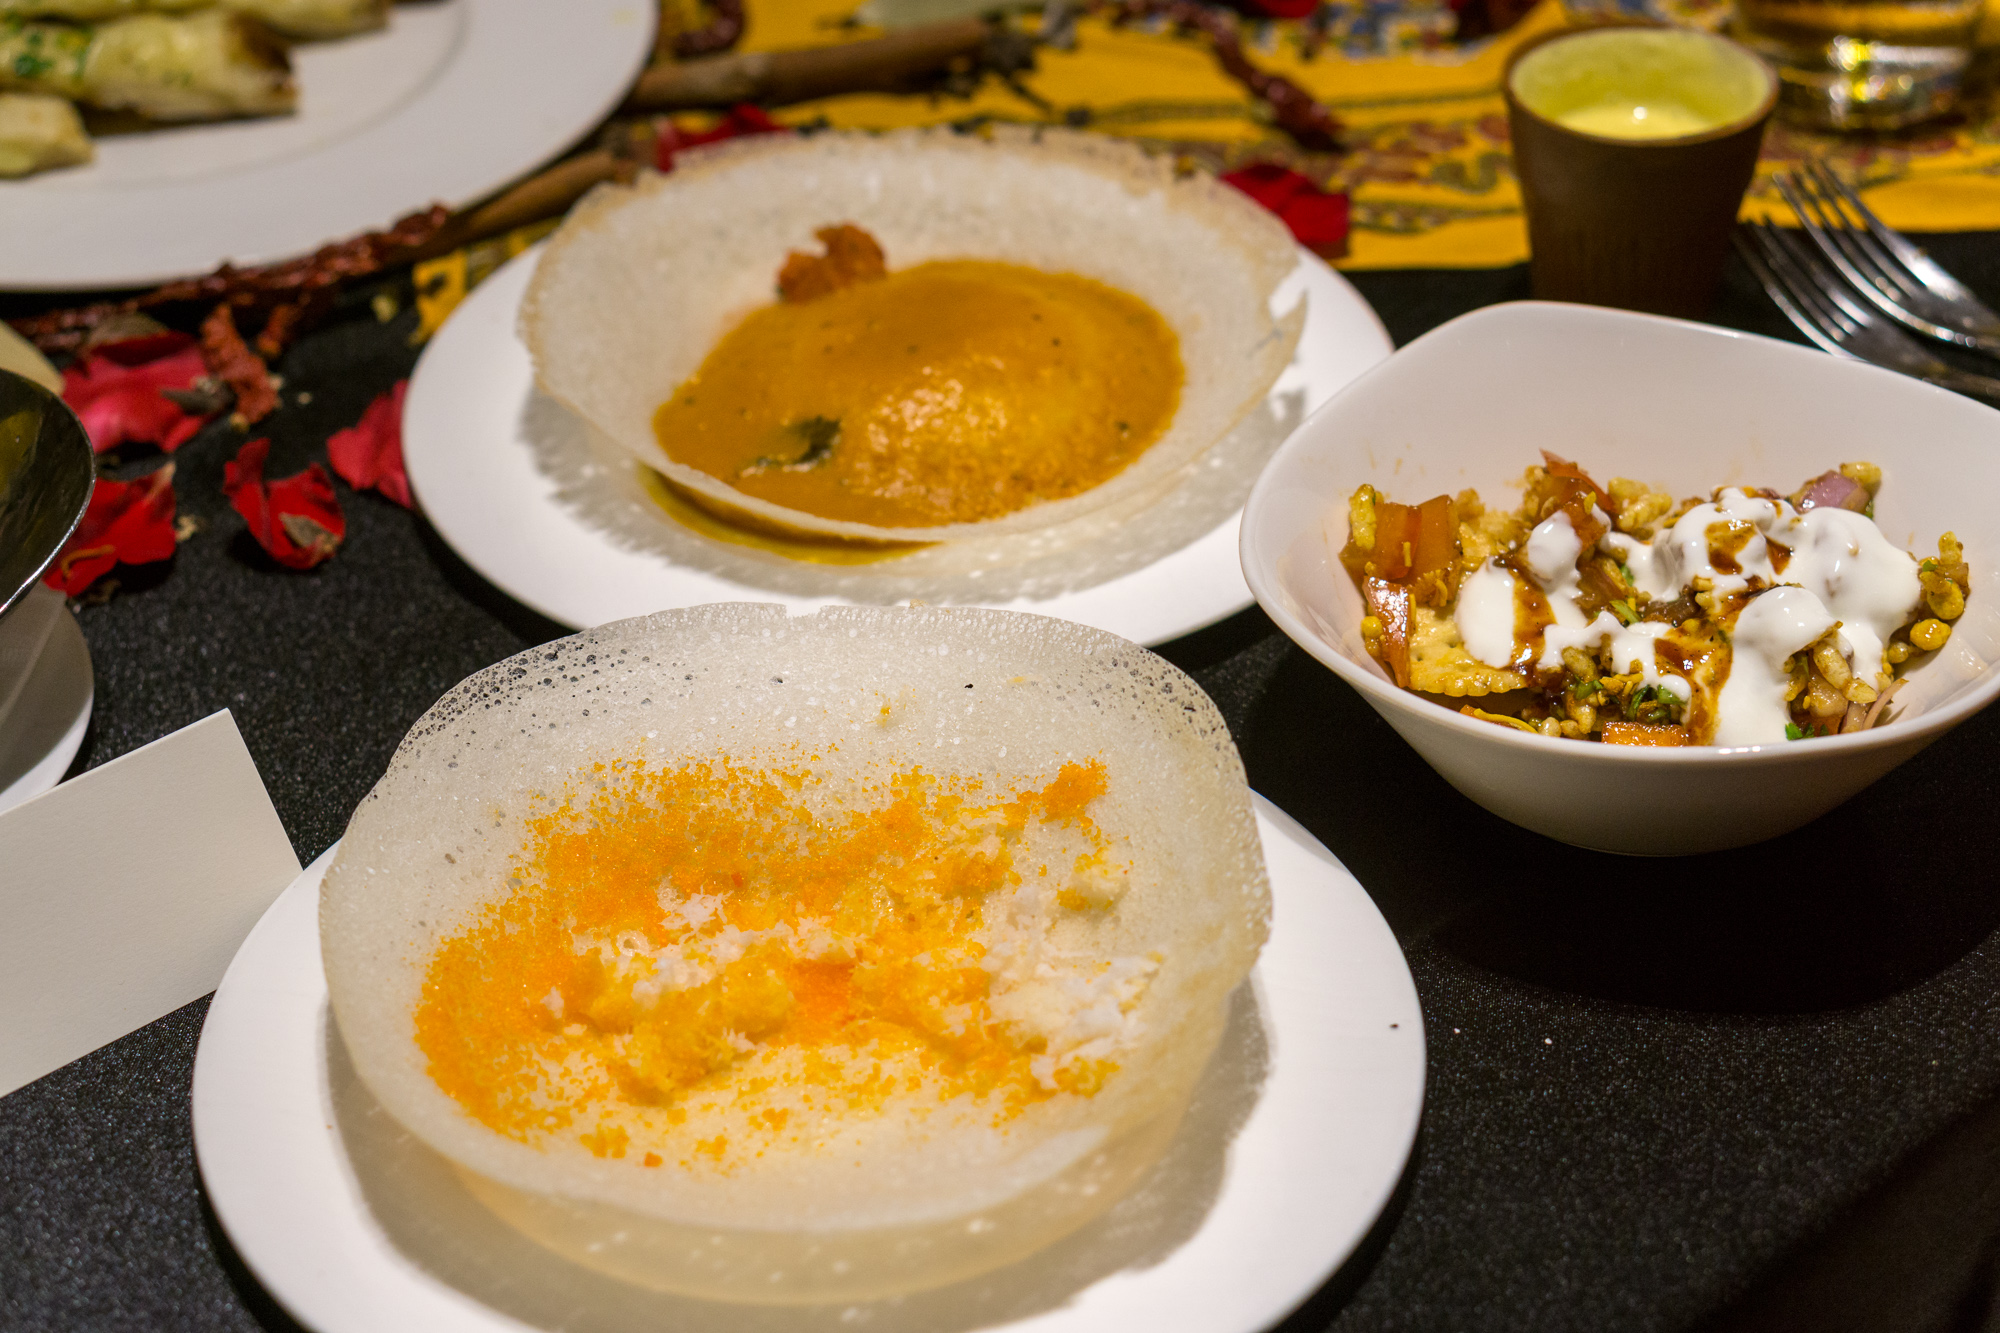 Indian Food Festival at Melt Cafe Mandarin Oriental Singapore - Sweet and Savoury Appam, and Bhuna Shakerkand Ki Chaat